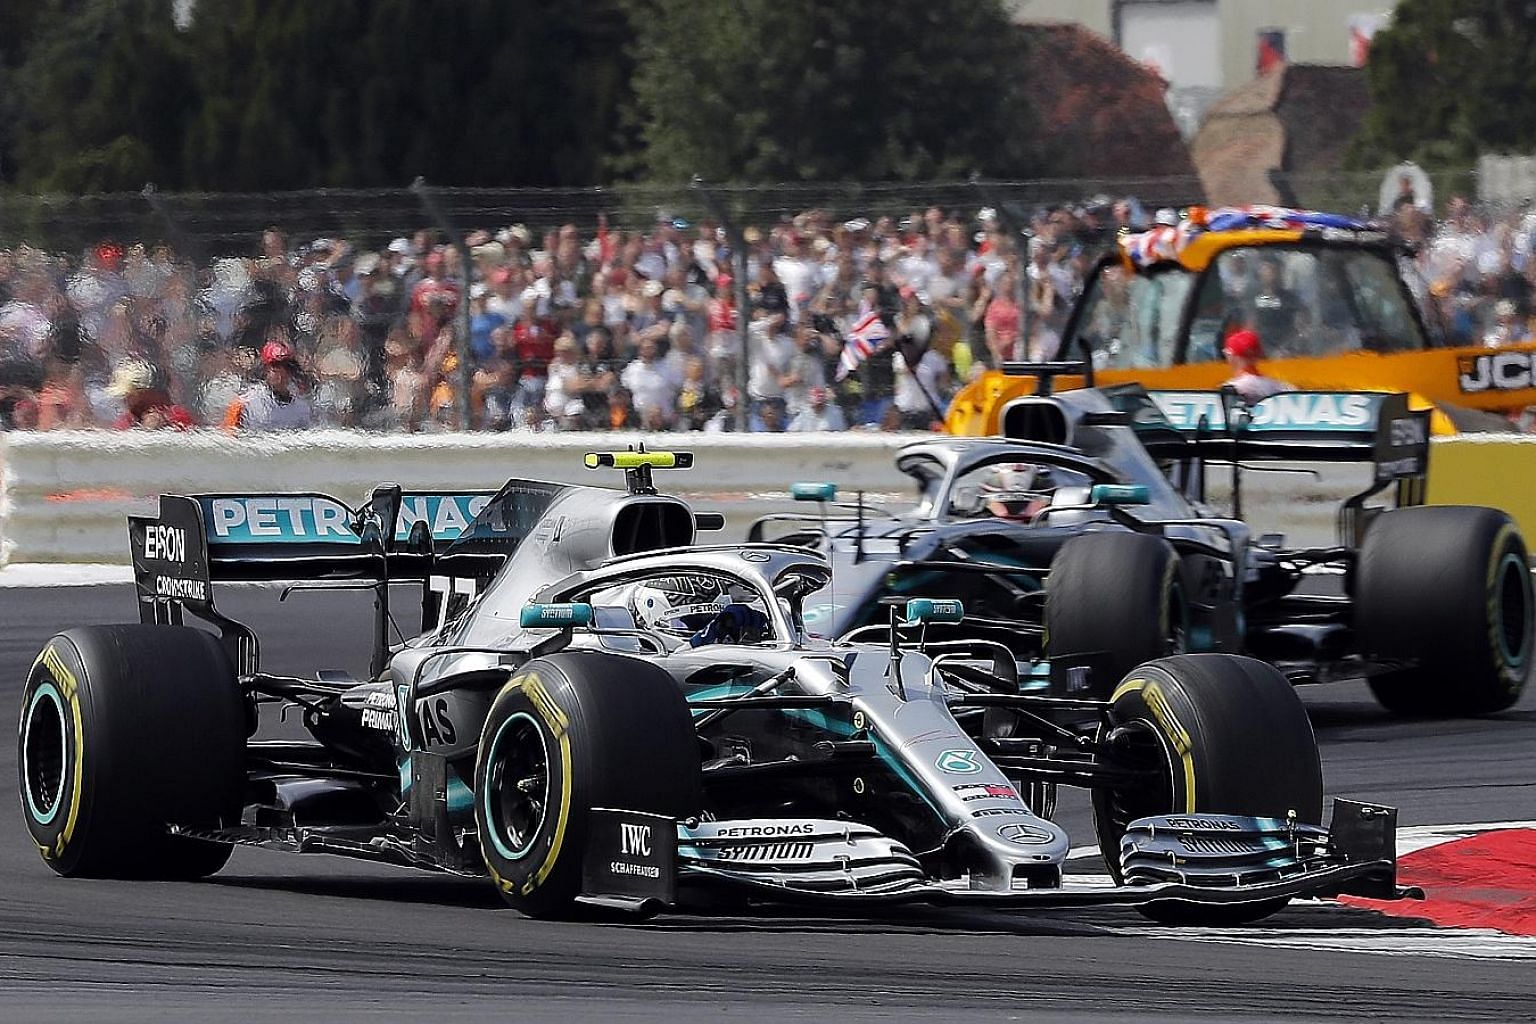 Valtteri Bottas (front) leading Mercedes teammate Lewis Hamilton in an early stage of the British Grand Prix at the Silverstone circuit. The design of the track gave drivers space to overtake, which race winner Hamilton did, albeit via a pit-lane mis